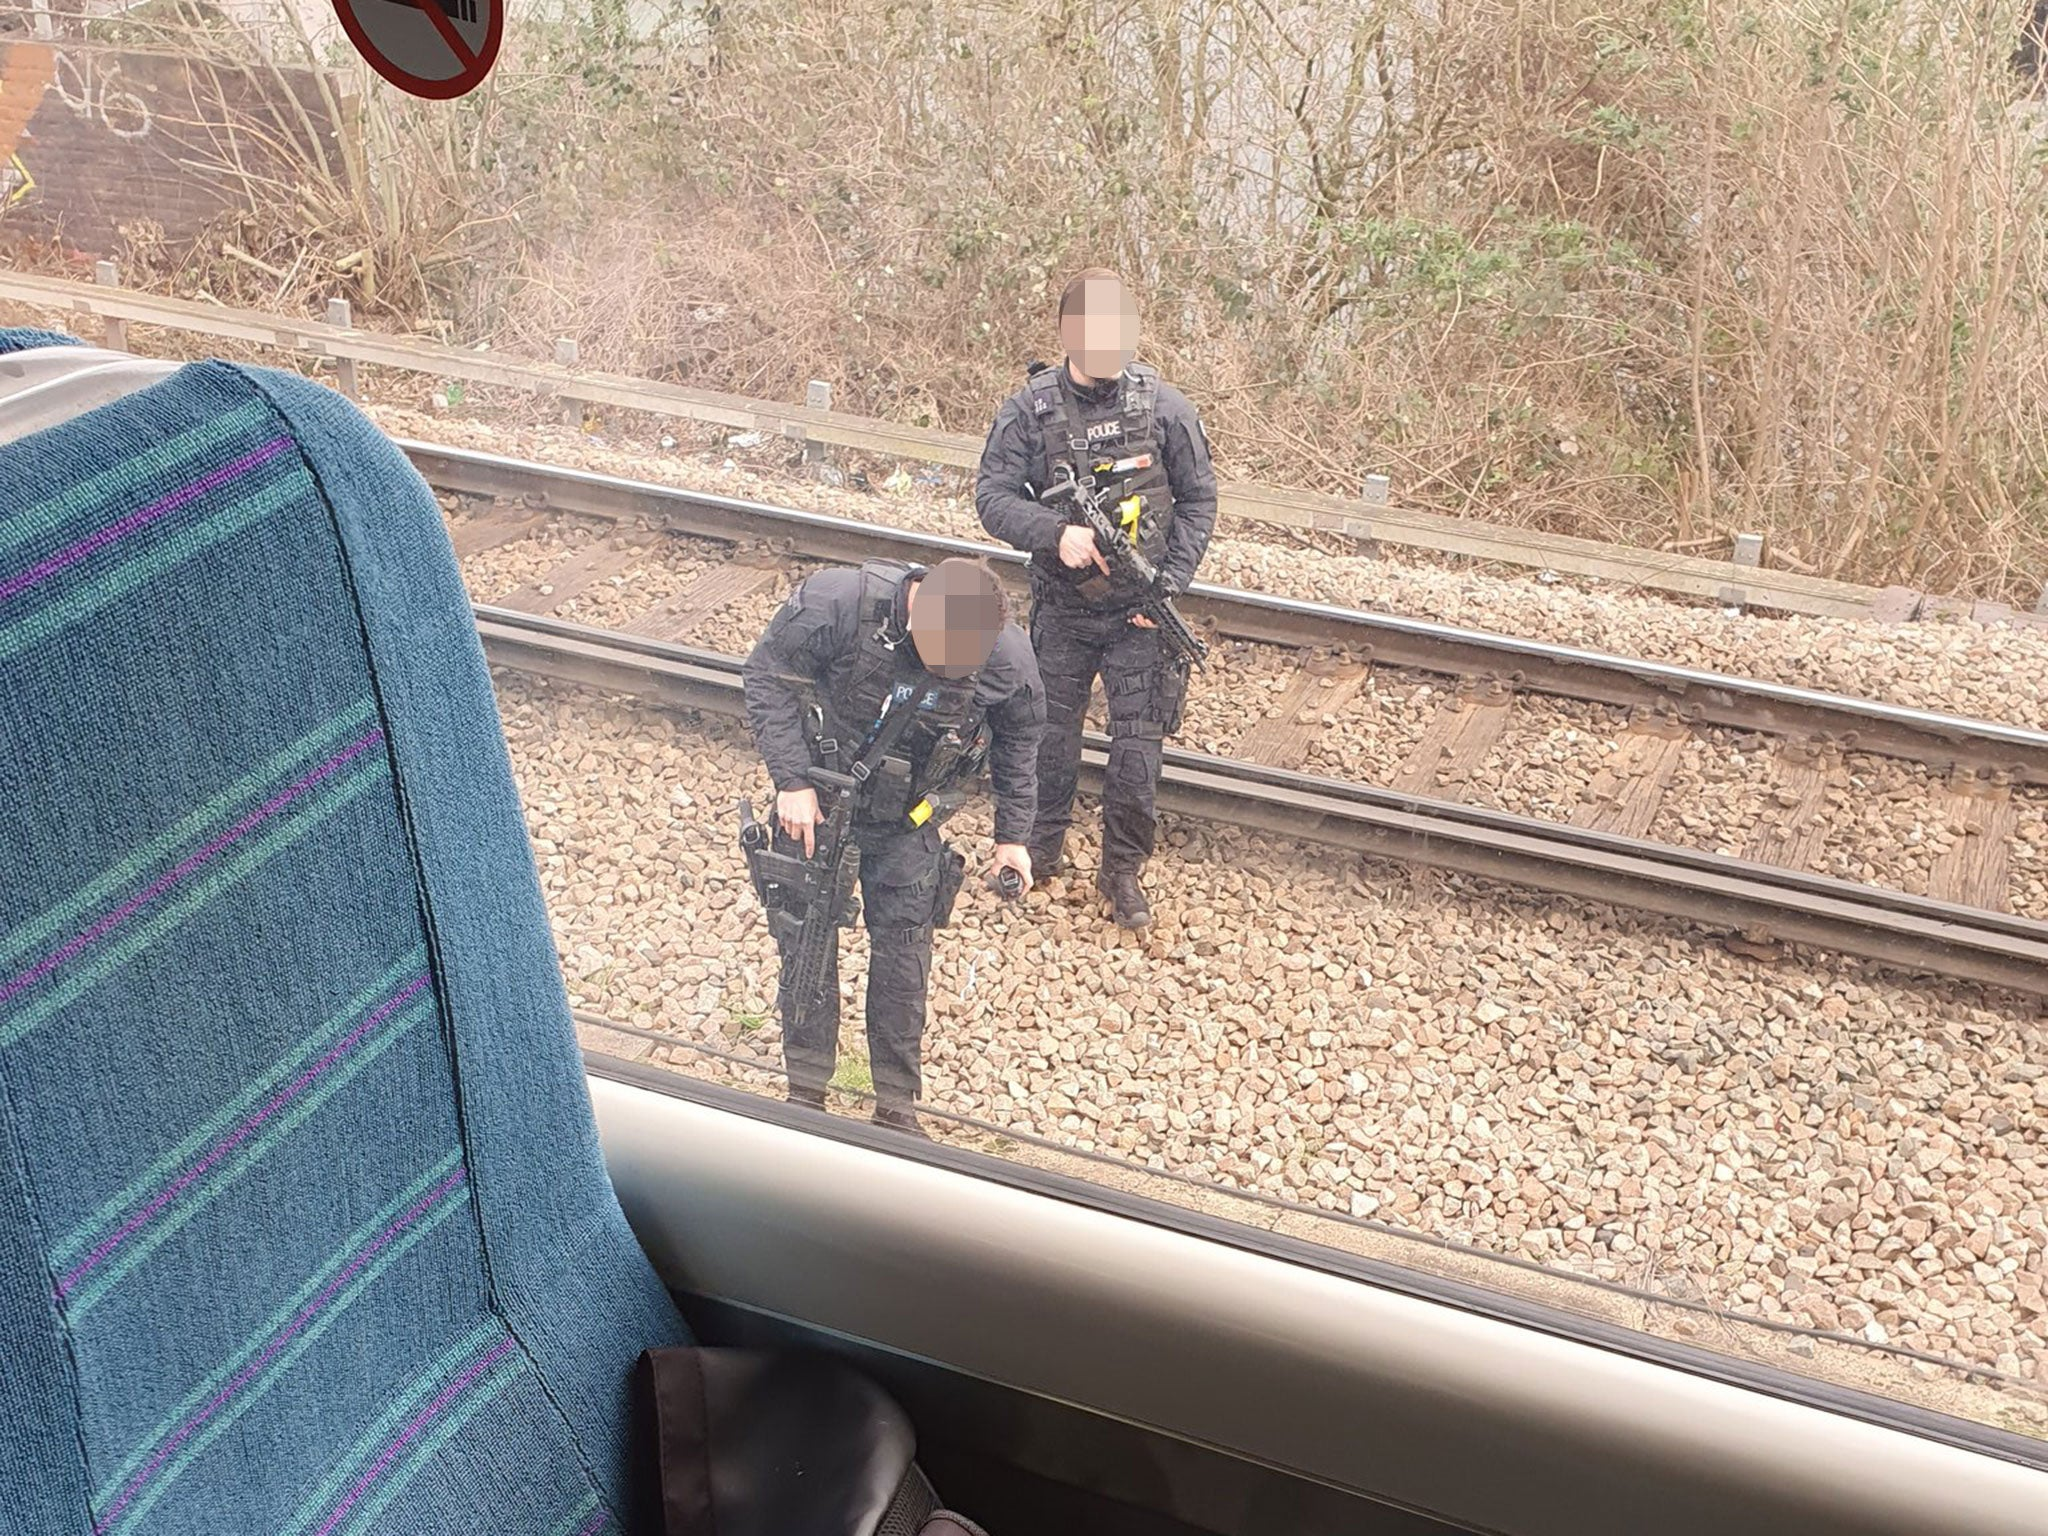 Man jumps on train armed with 'massive knife' in London